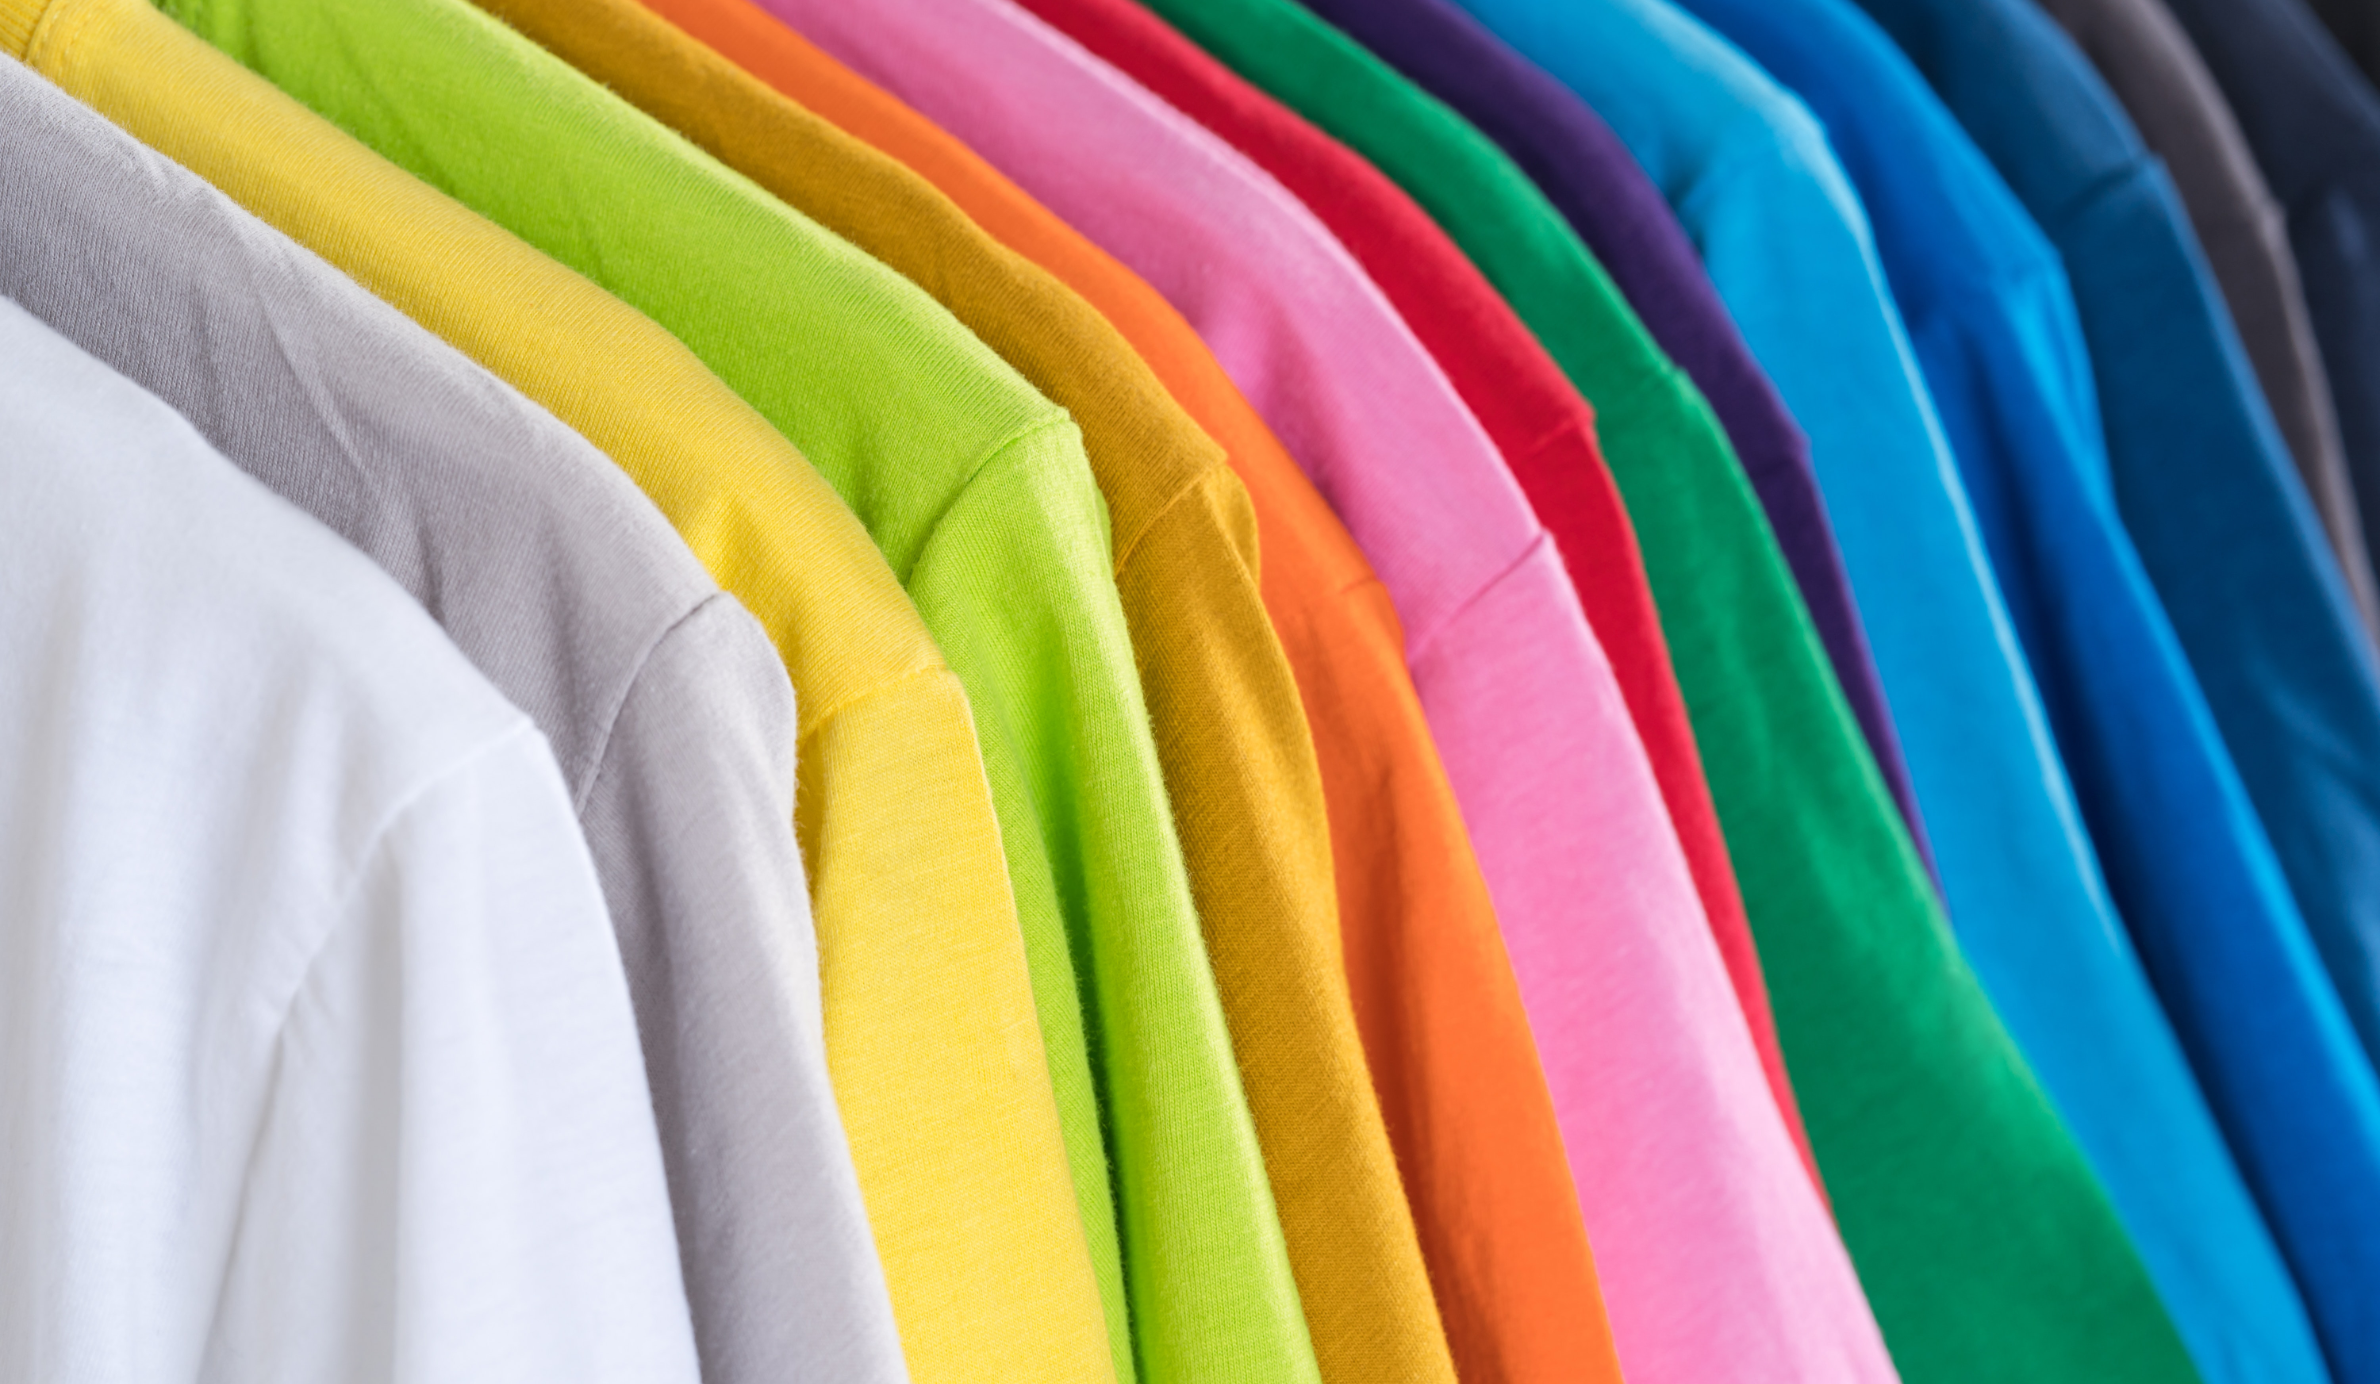 A row to colourful t-shirts. Sorapong Chaipanya/Unsplash